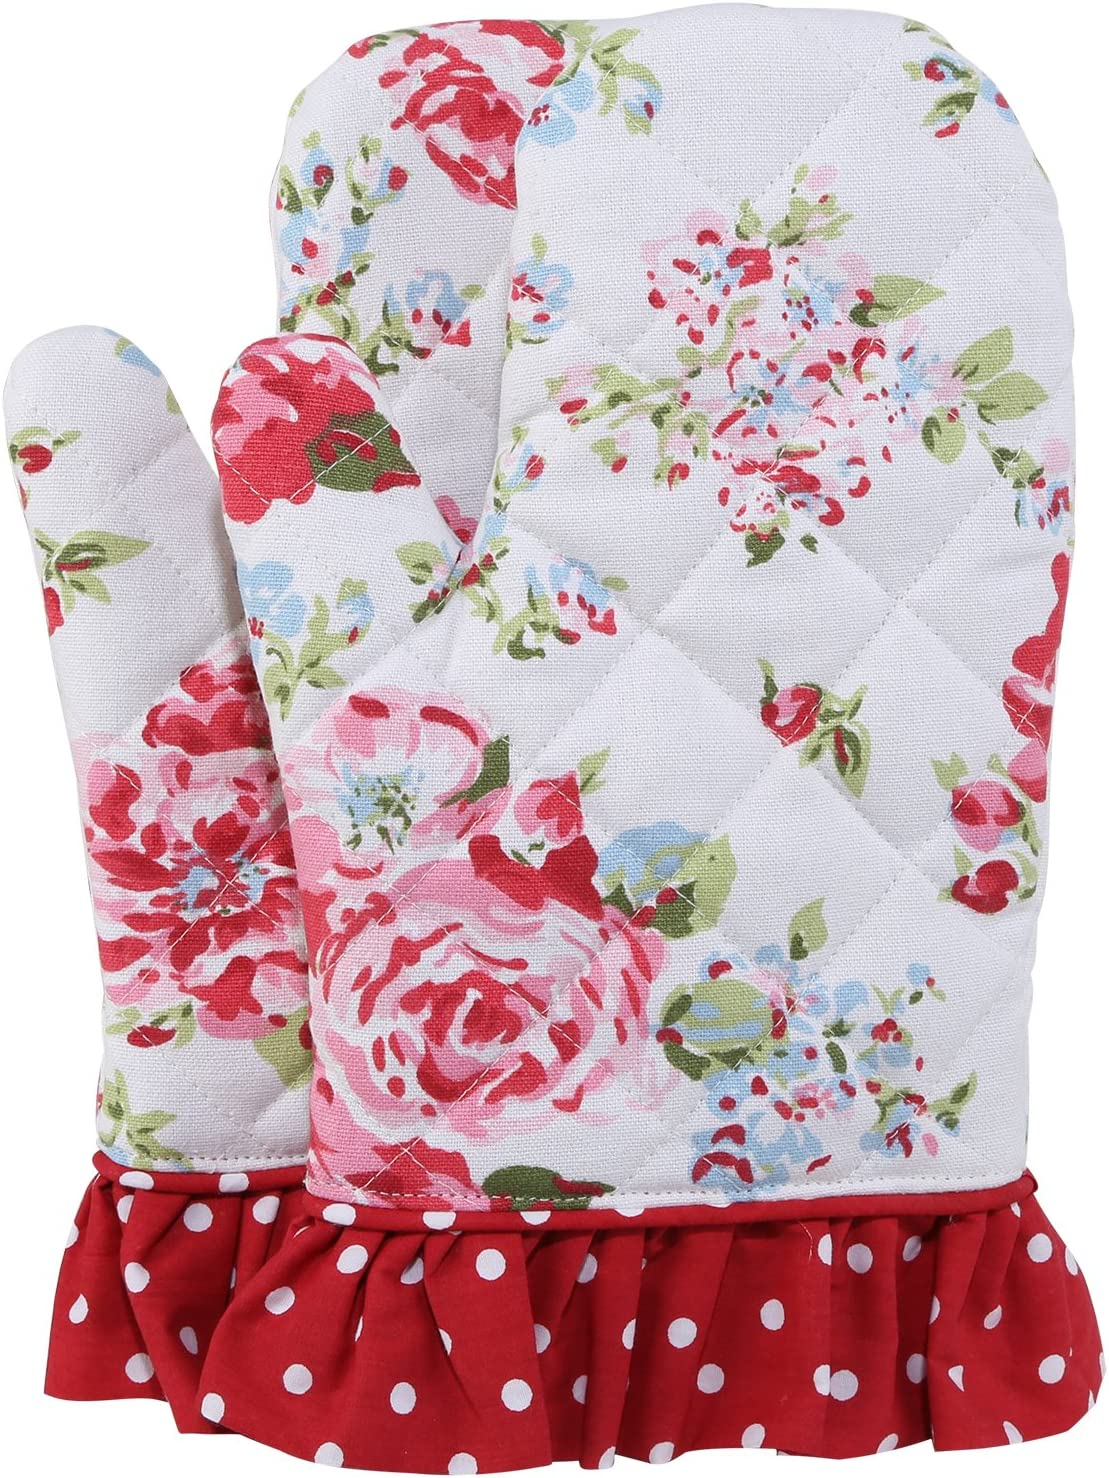 NEOVIVA Cotton Canvas Quilted Oven Mitt for Adult Women, Set of 2, Floral Lollipop Red